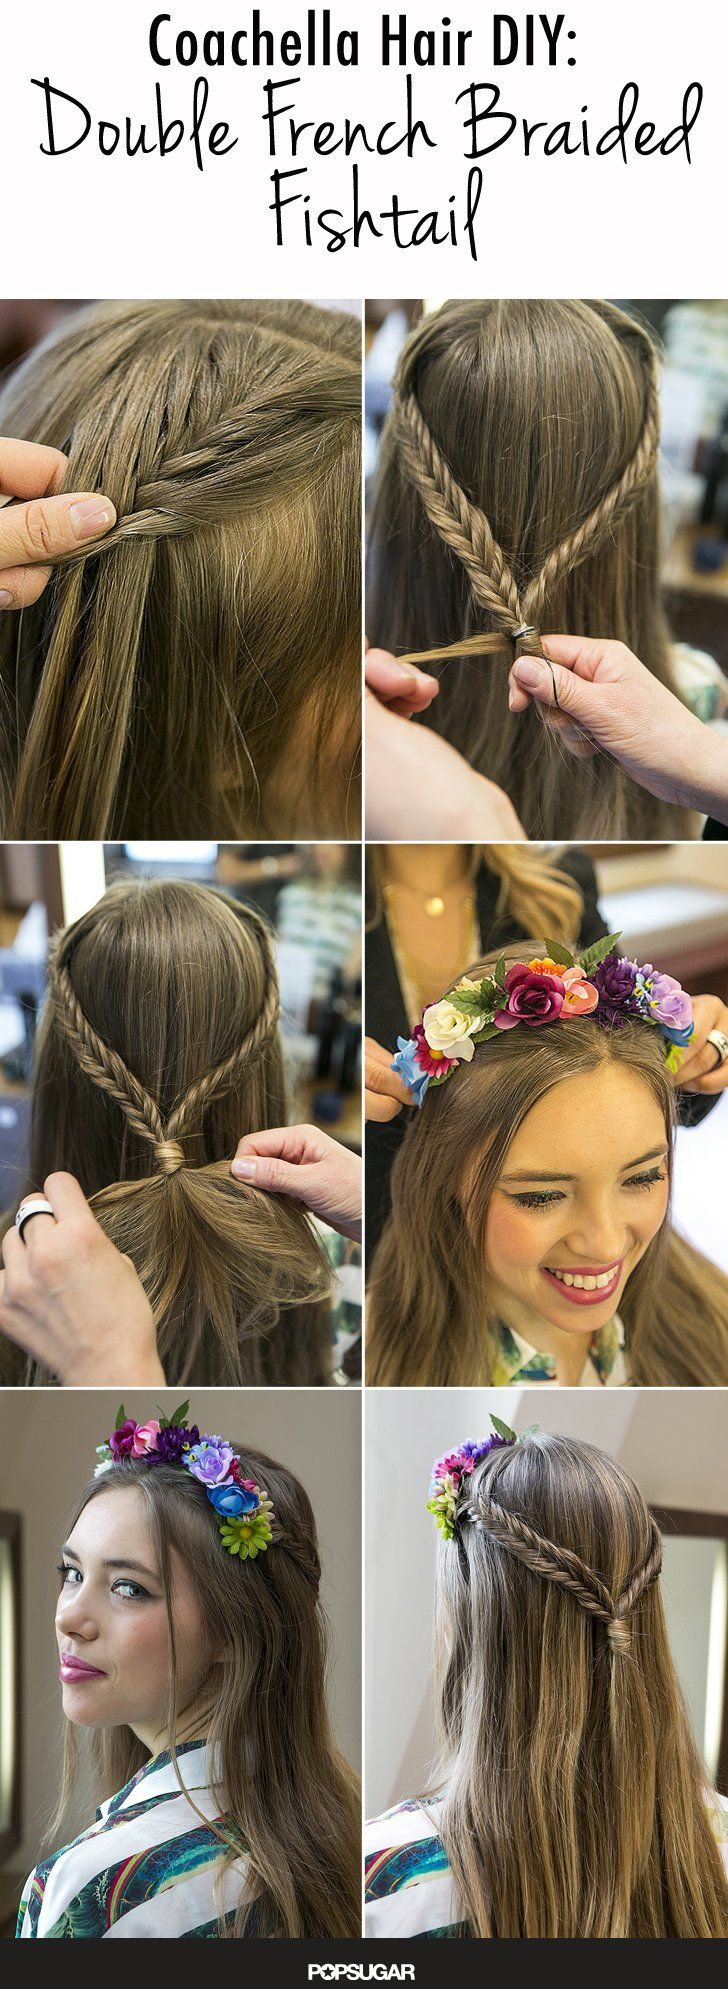 Pin for Later: DIY This Double French Fishtail Plaited Festival Hairstyle